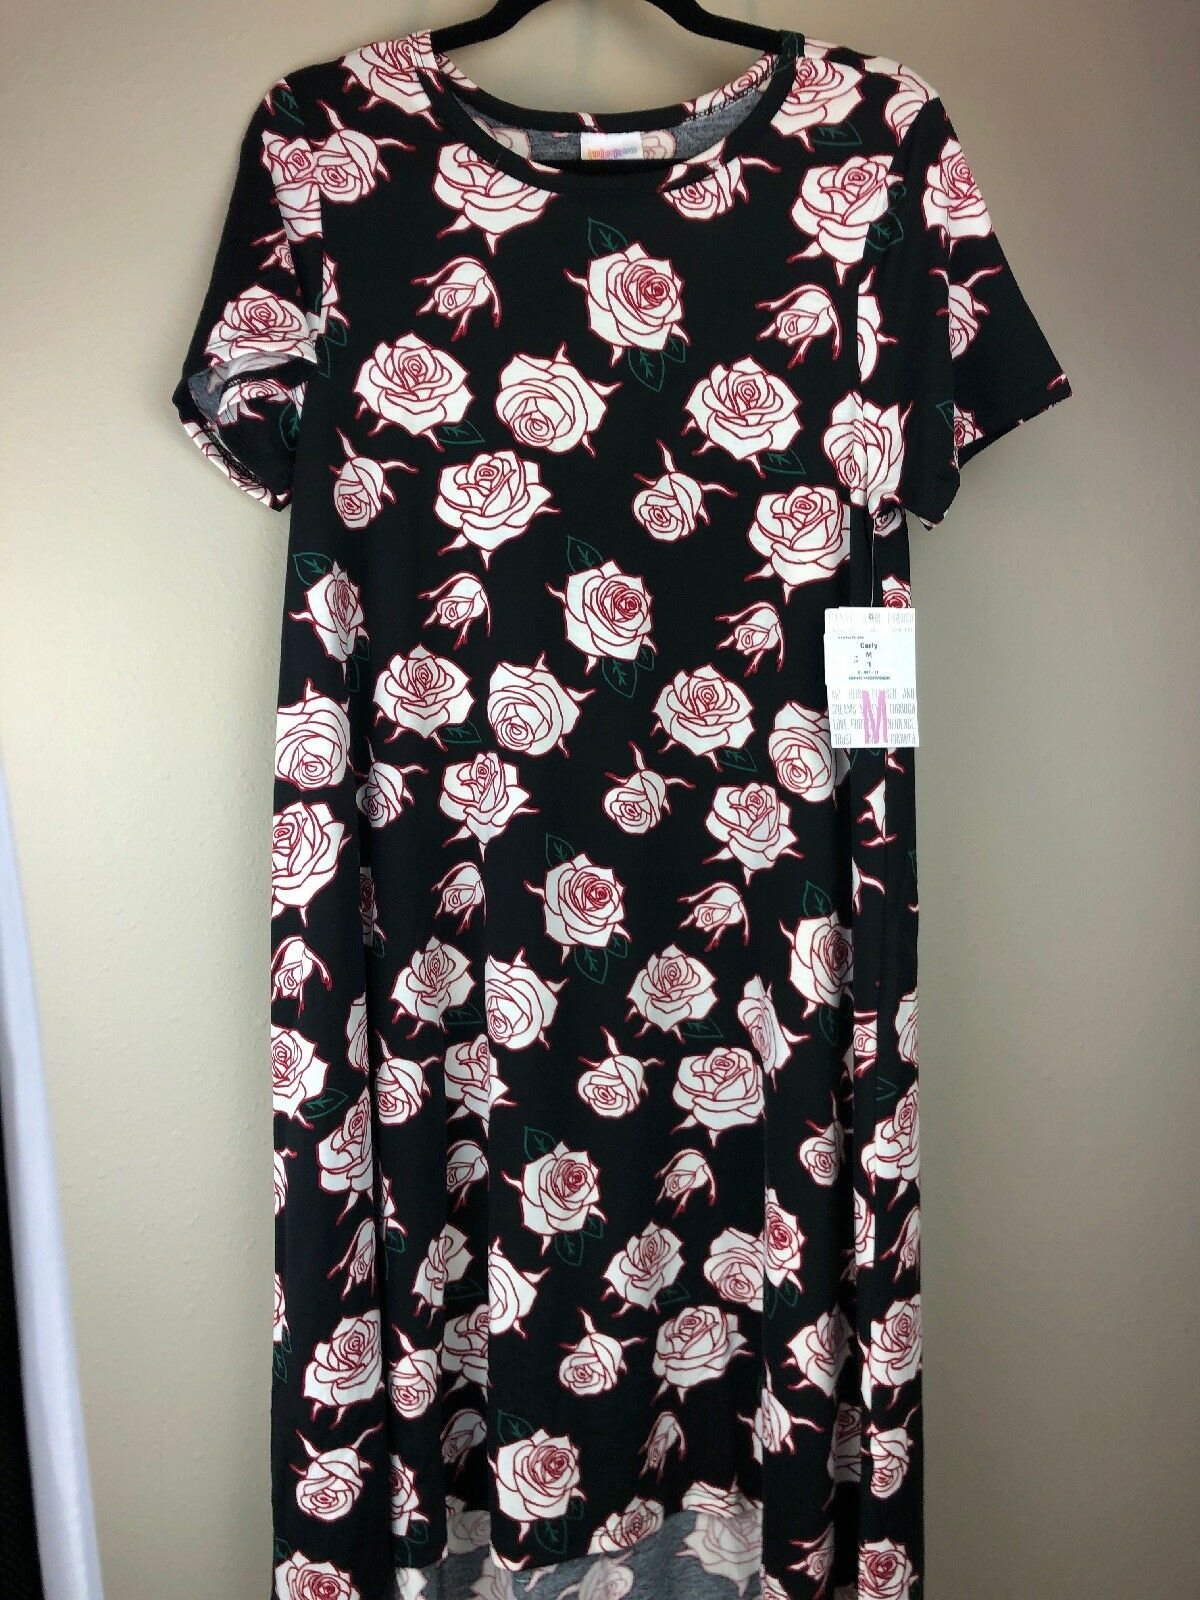 LuLaRoe M Pocketless Carly Dress rot & Weiß Rosas on schwarz - Medium